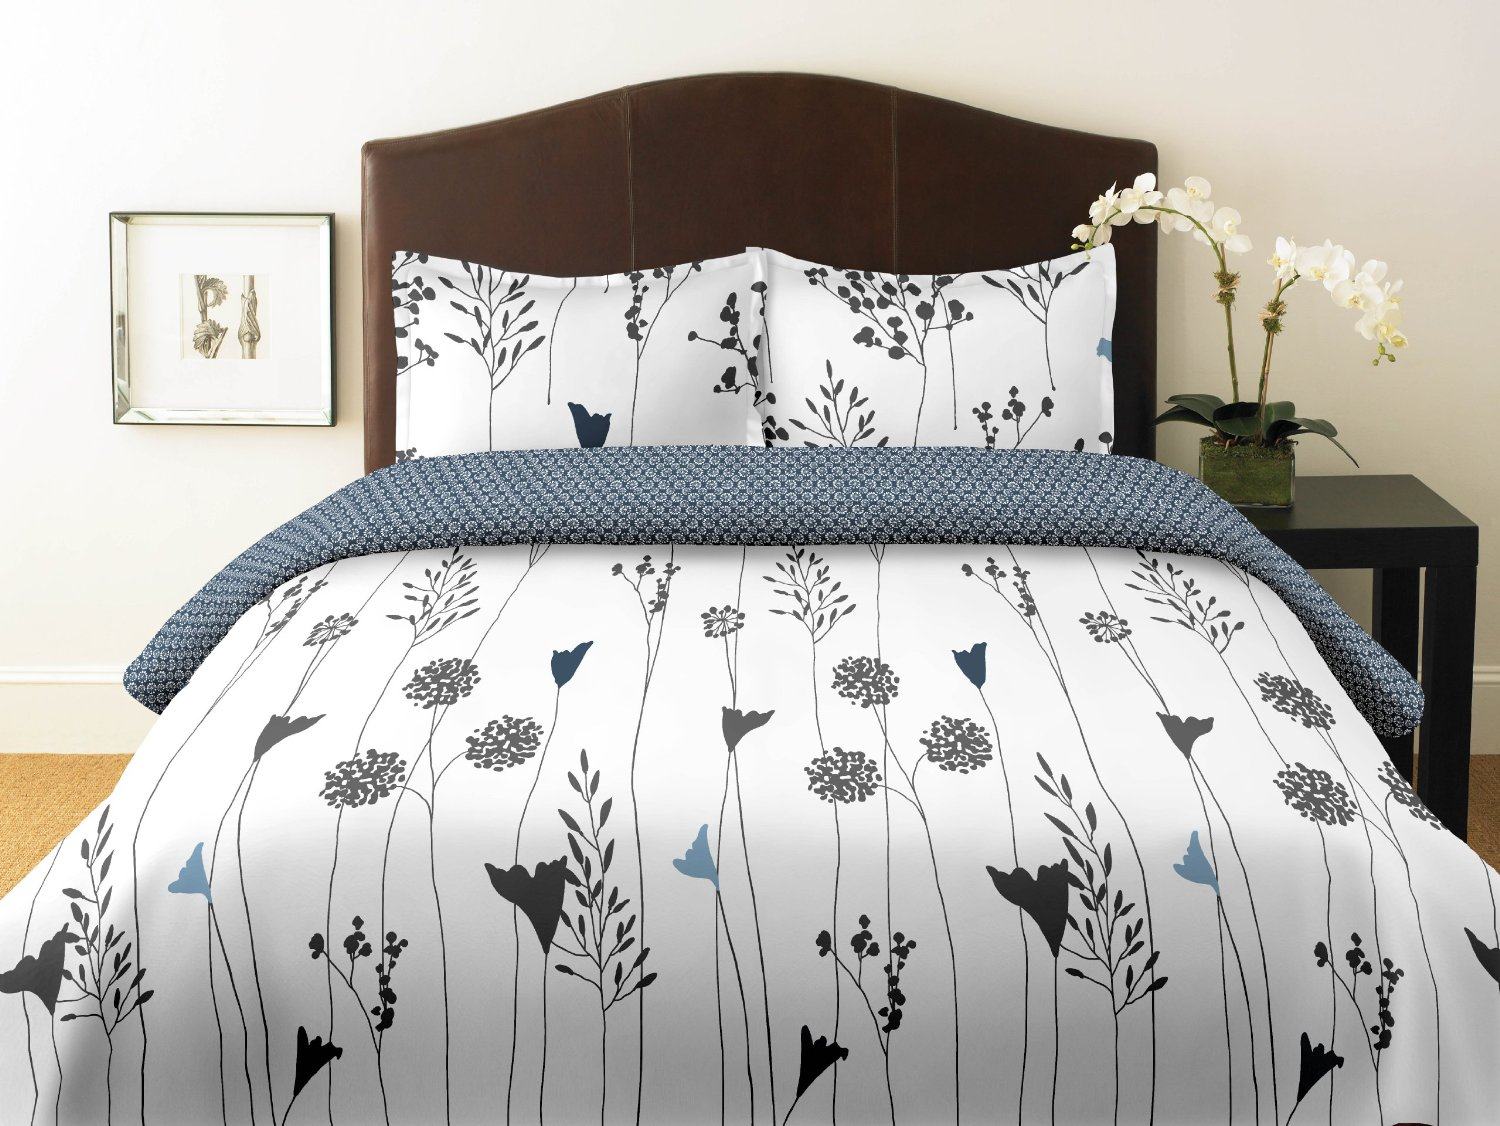 Bedroom Comfortable Queen Duvet Covers For Chic Bedroom Decoration Ideas